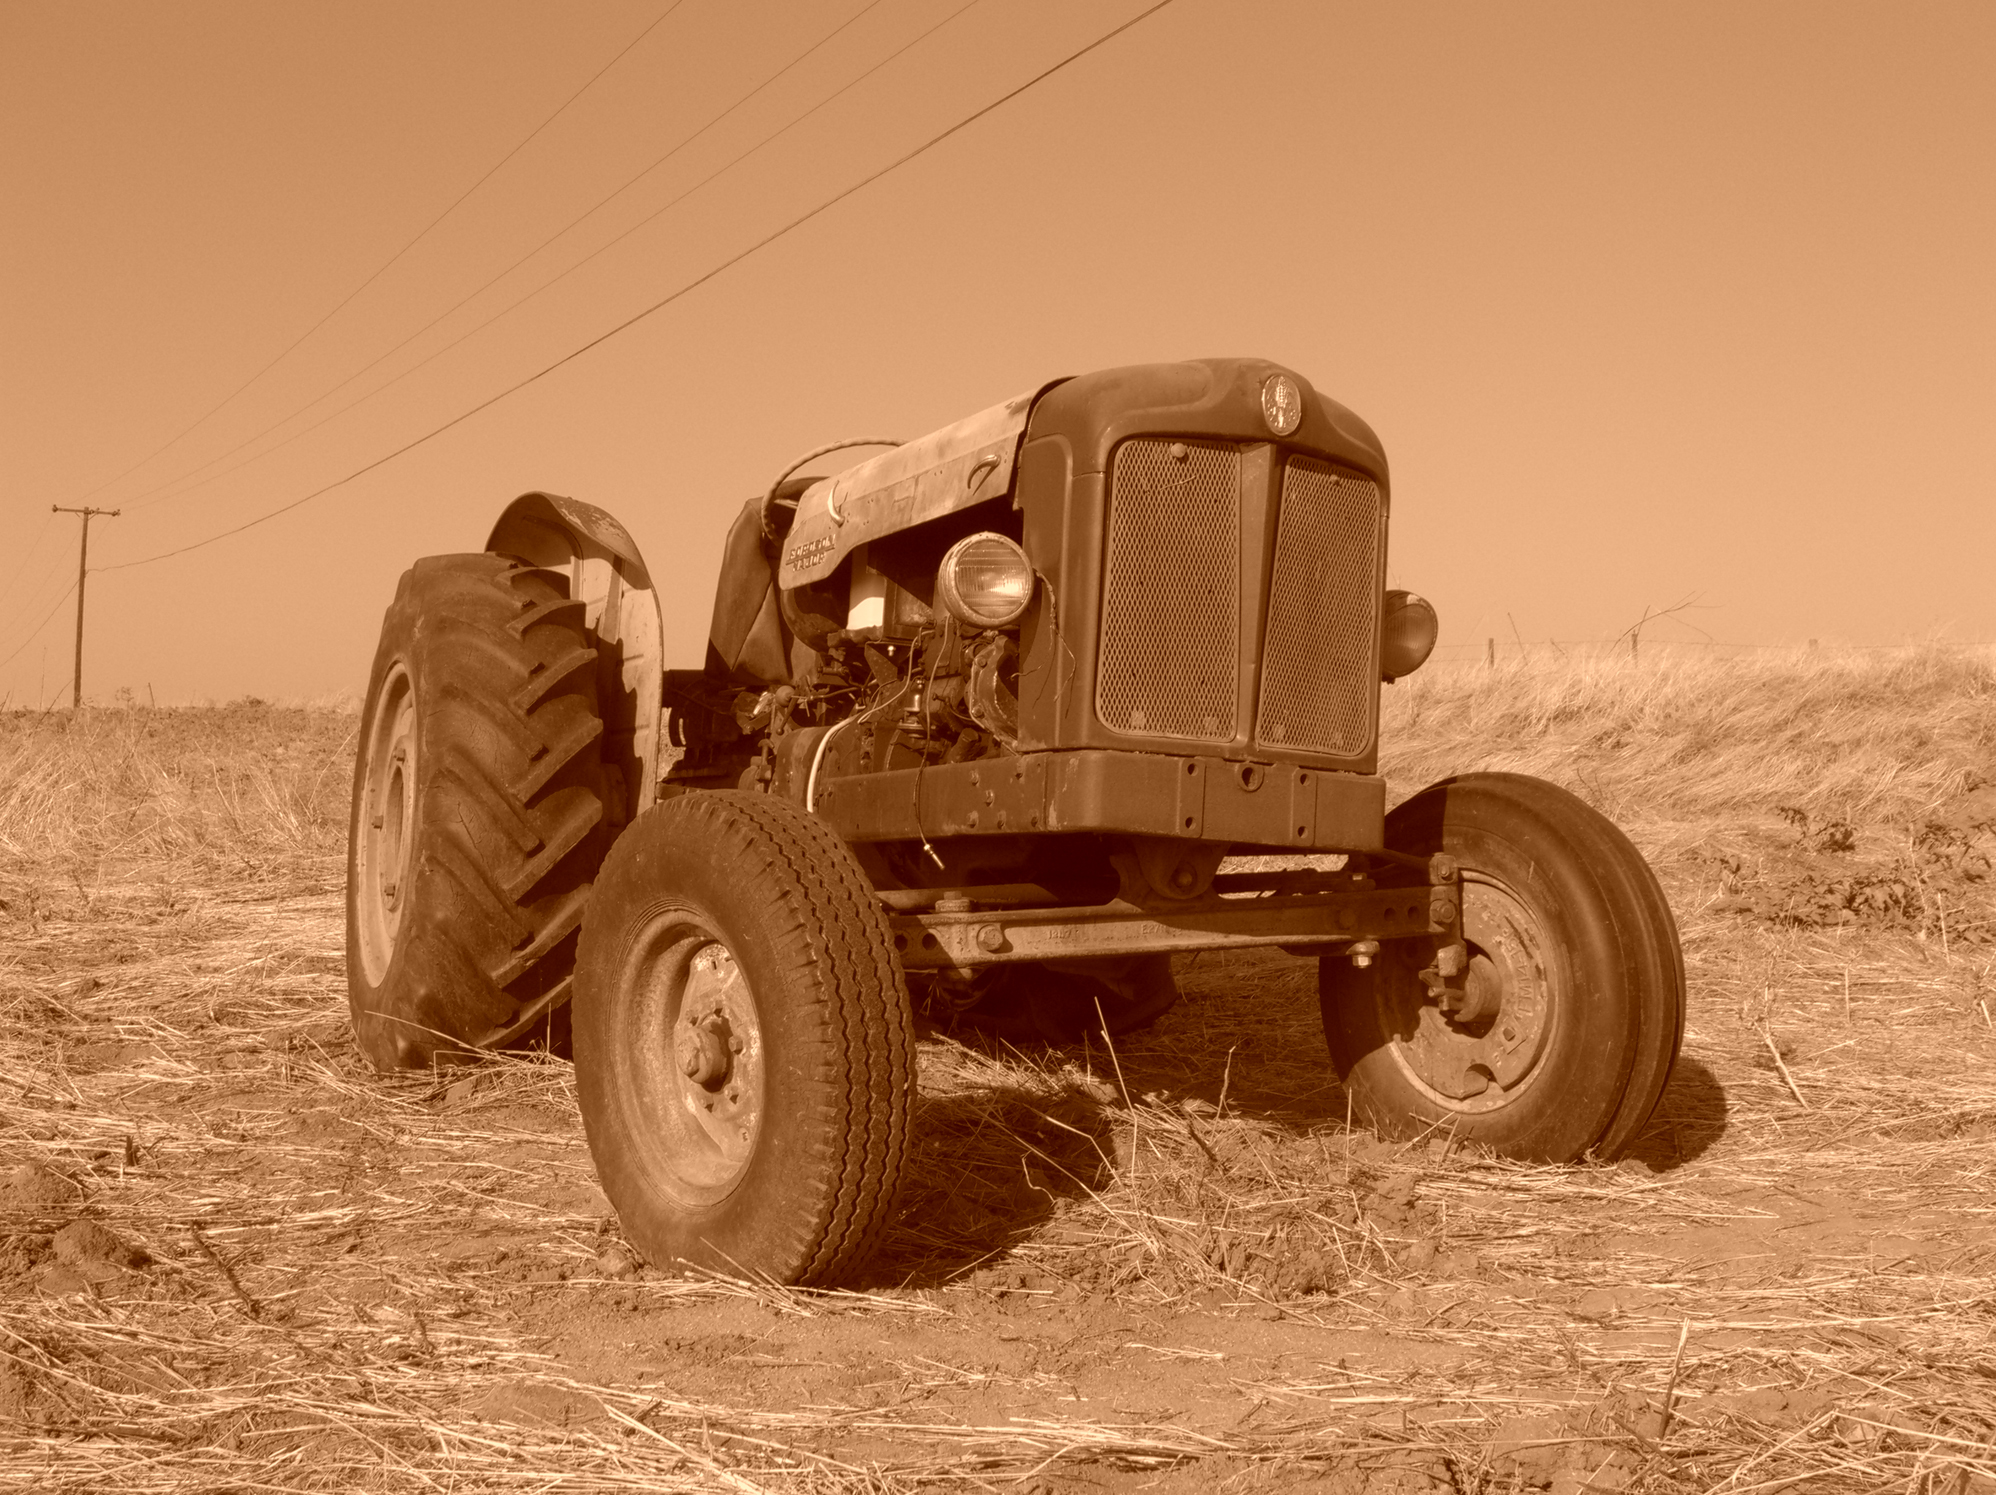 Old Fordson Laid to Rest, Motor, Plains, Tractor, Machine, HQ Photo